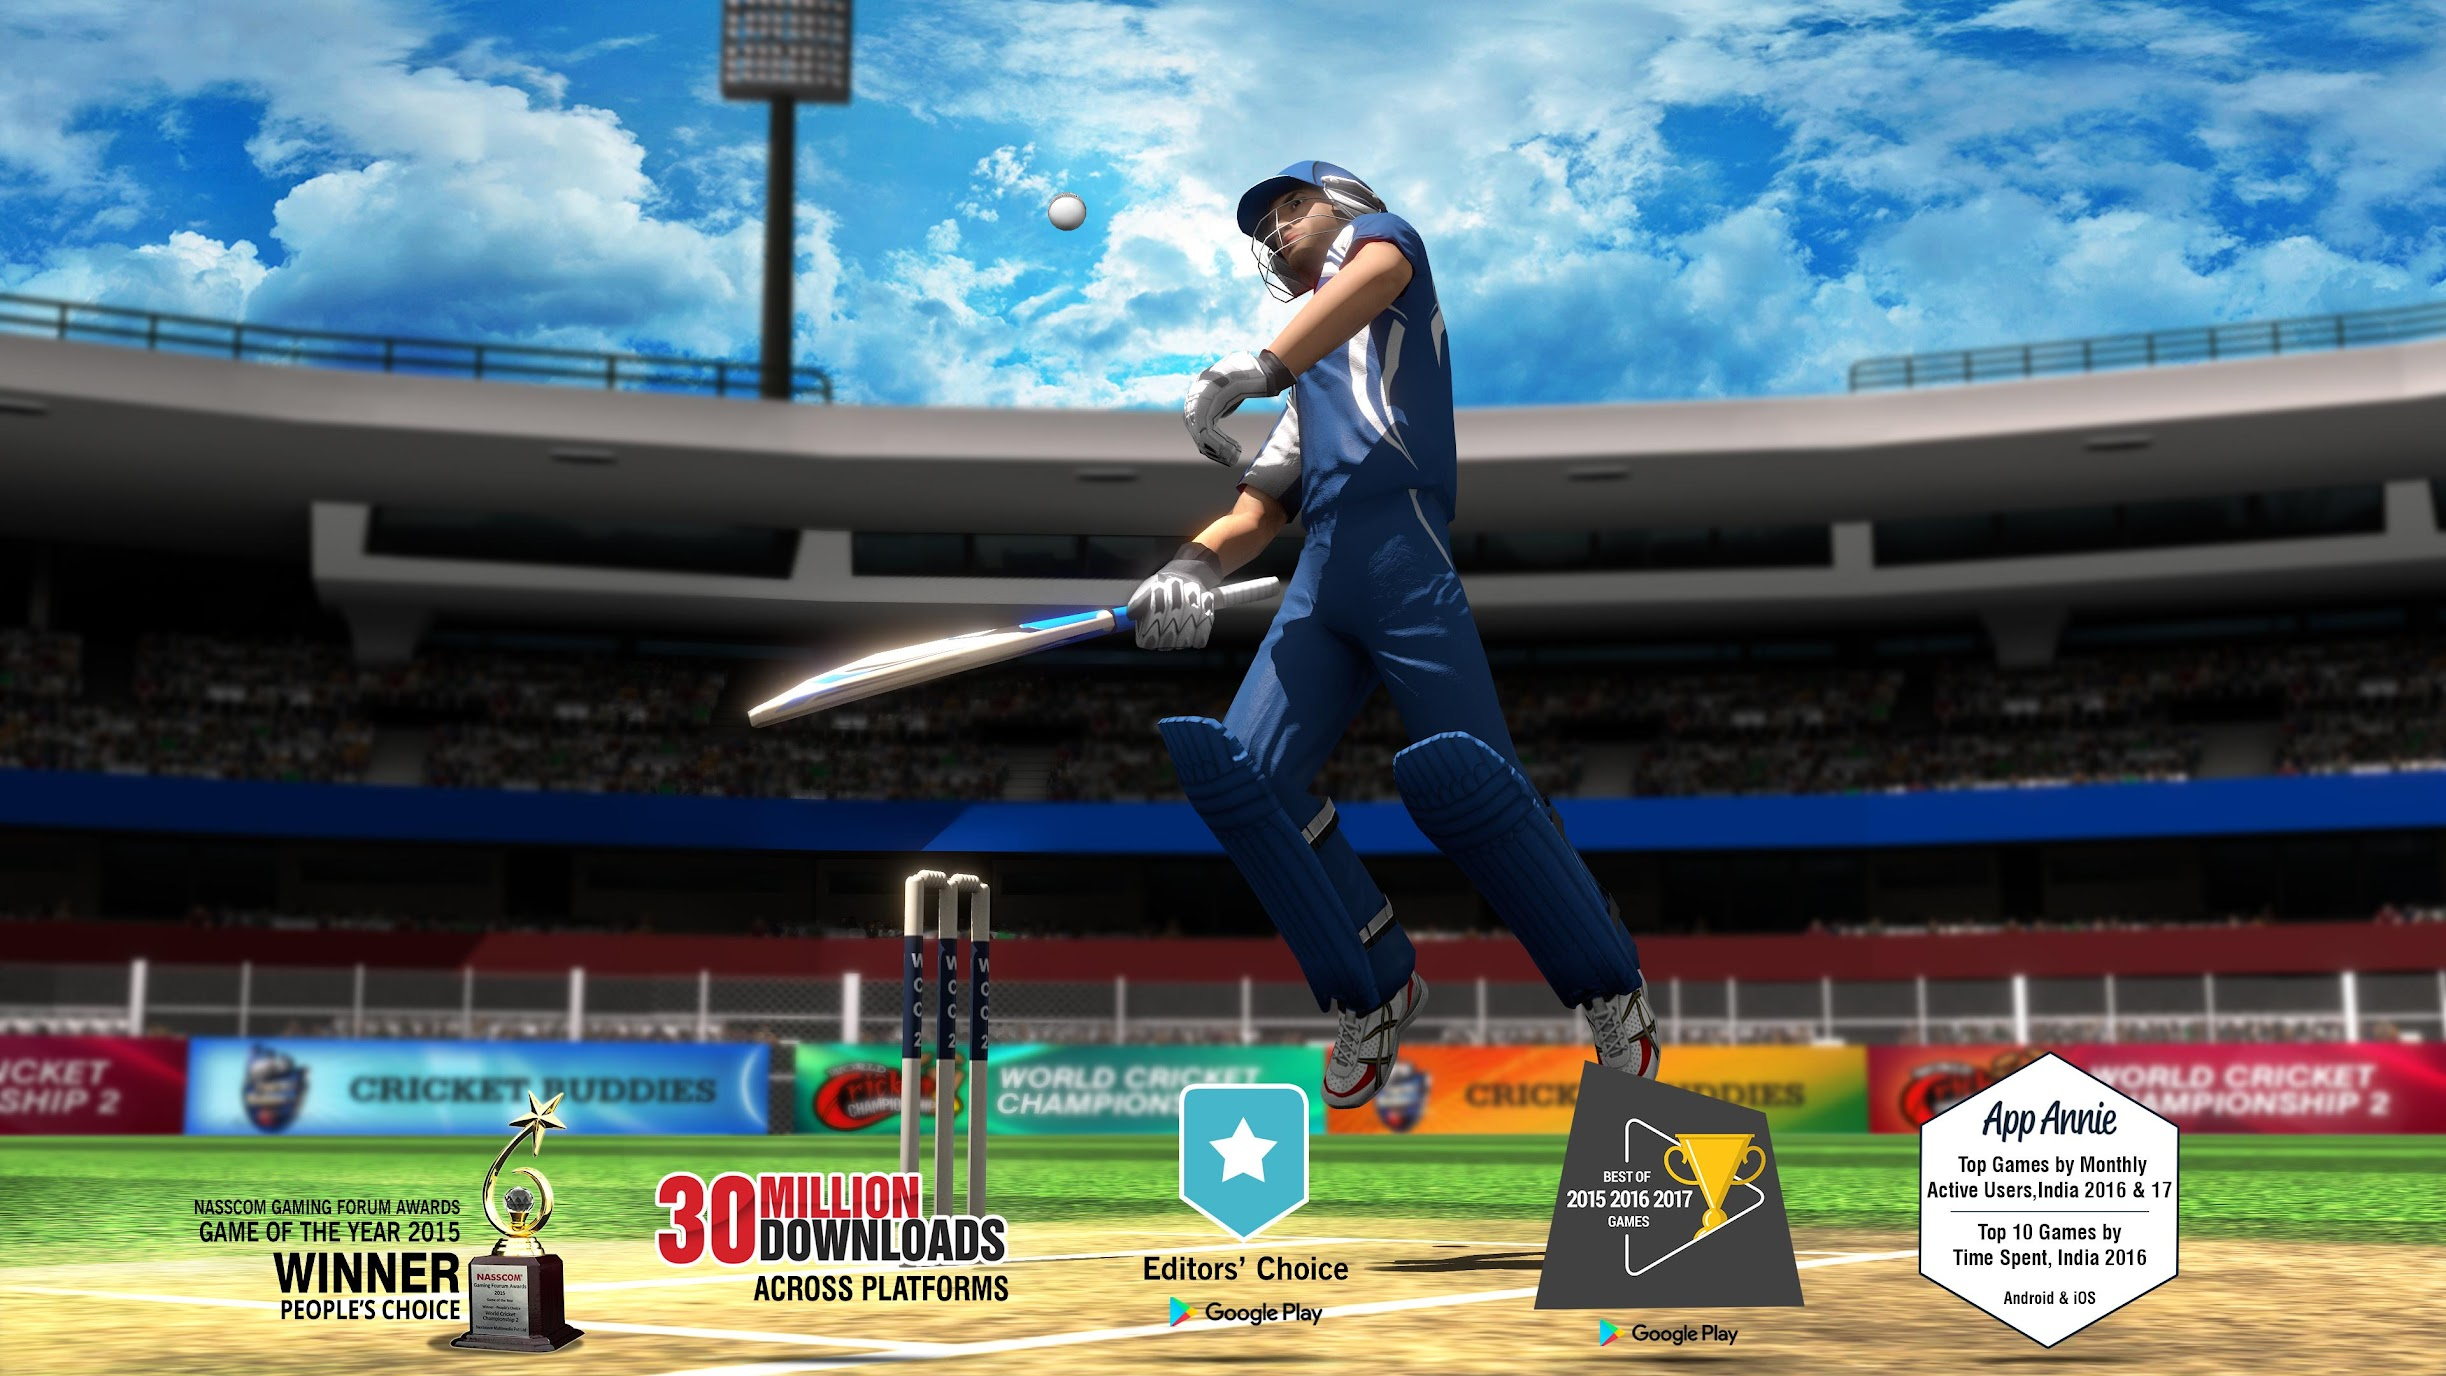 World Cricket Championship 2 Mod Apk (Unlimited Money) 2.8.2.3 Latest Version 4